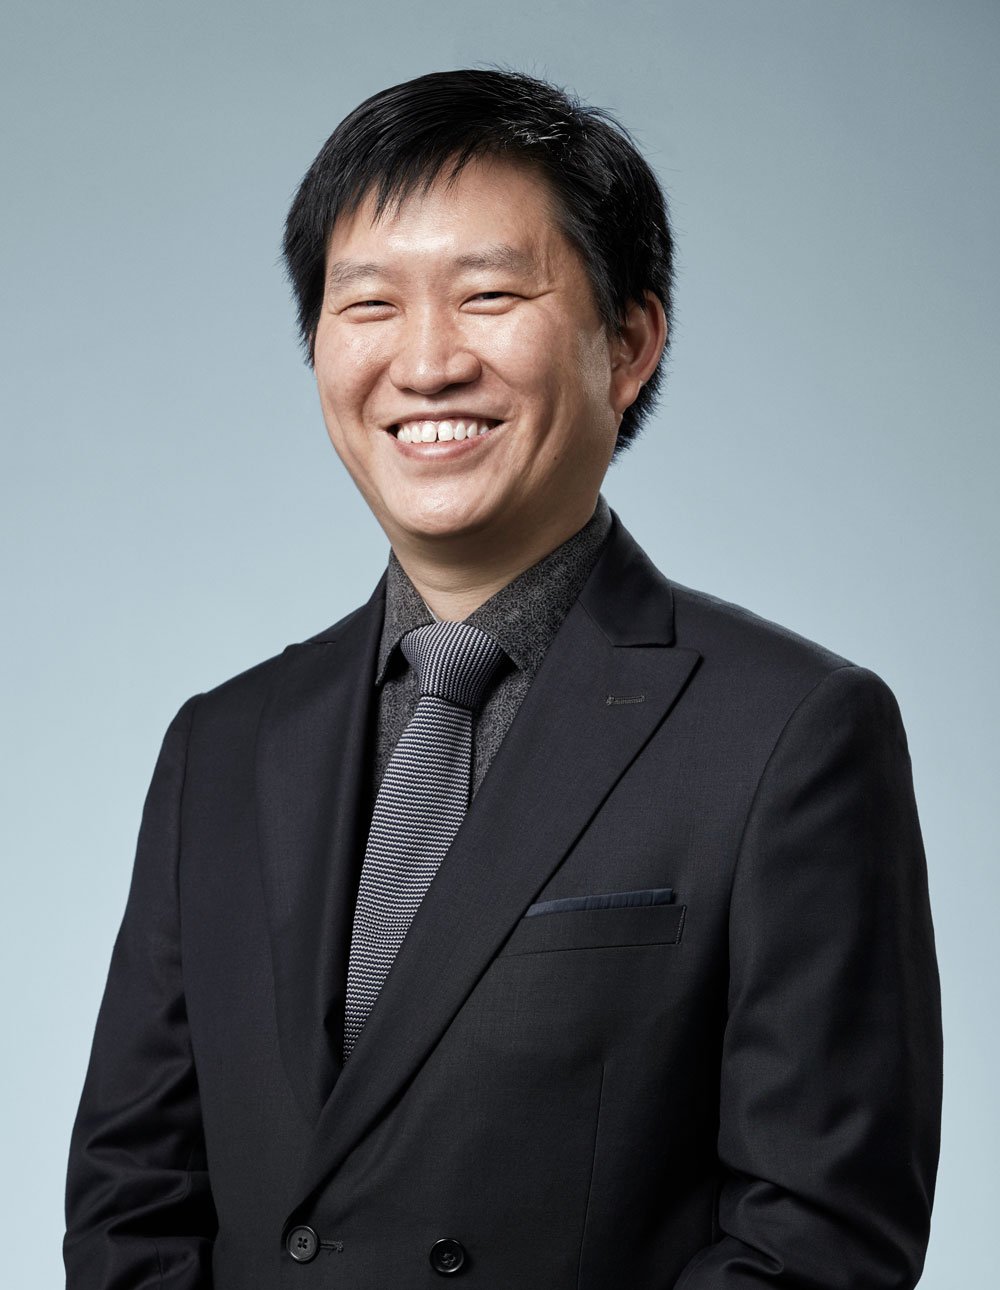 Dr. Wong Shing Yip (Deputy Chief Operations Officer)